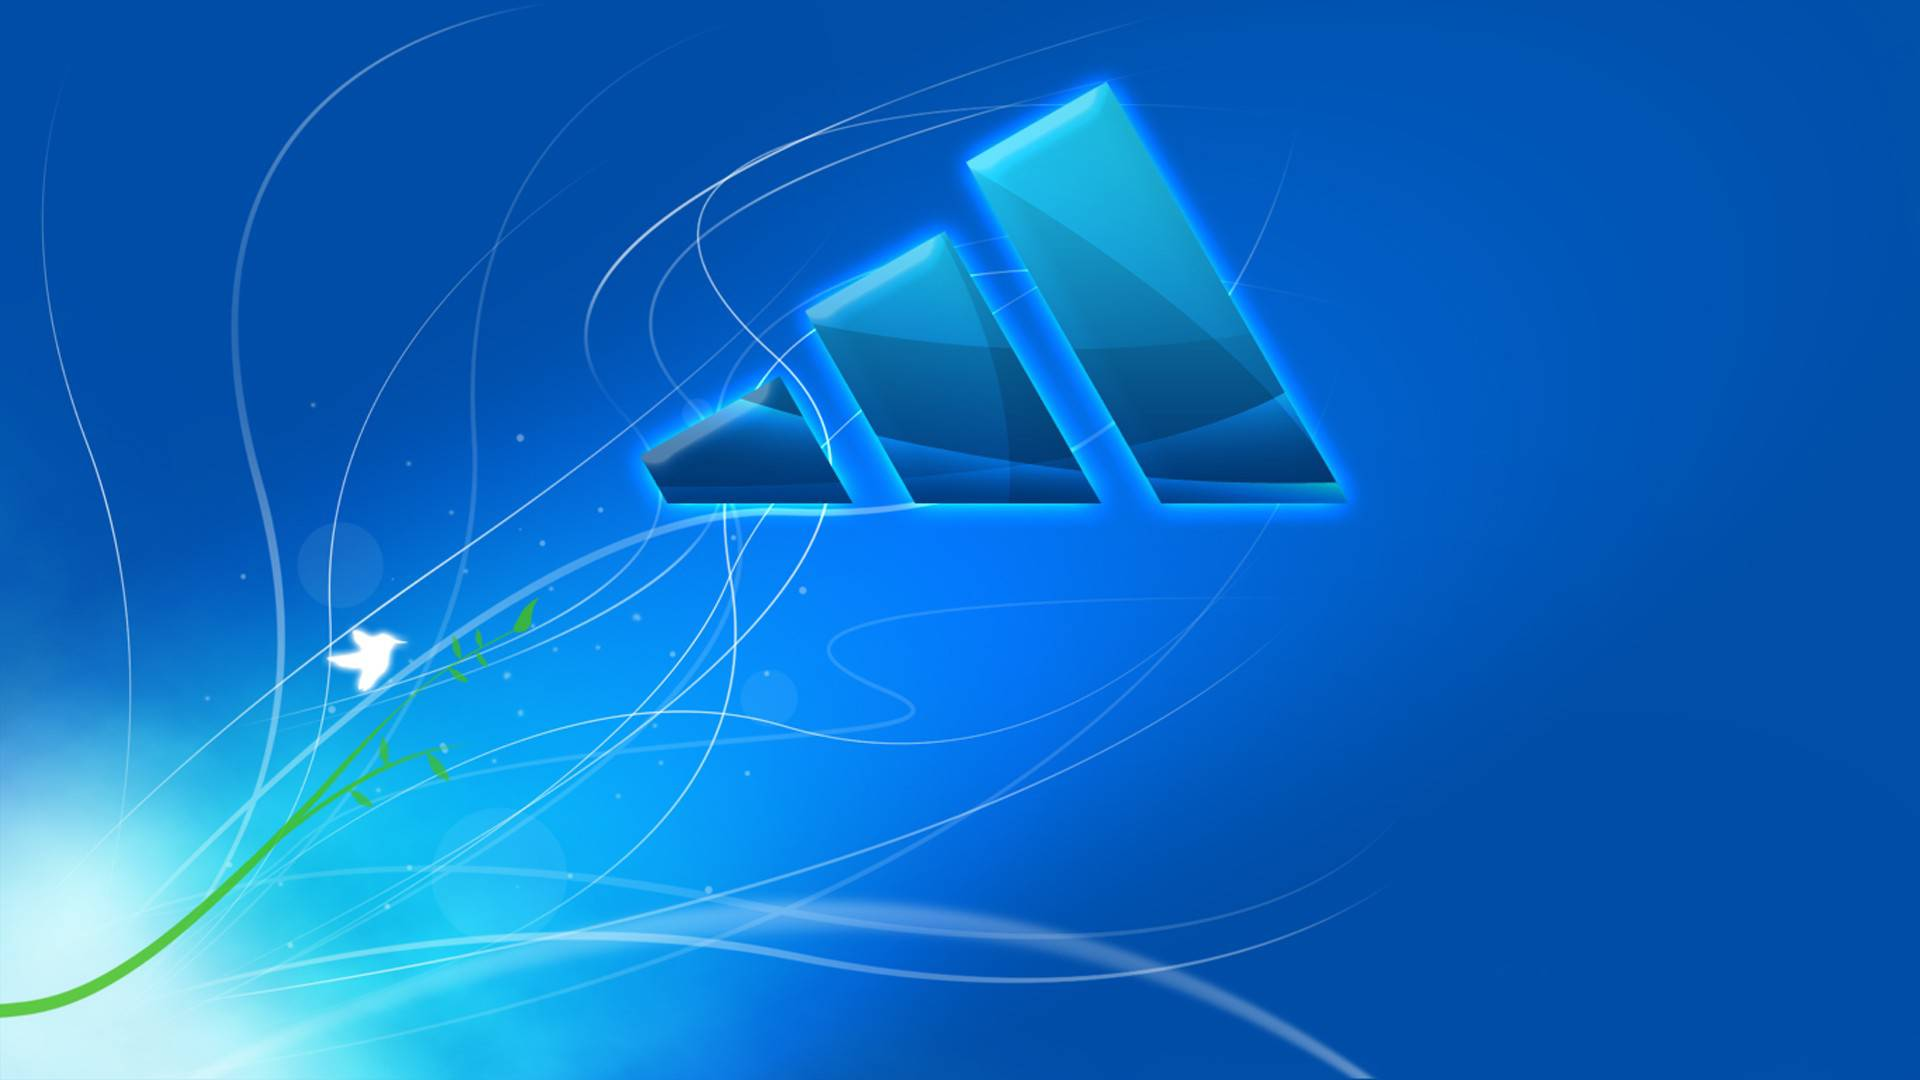 Windows 10 high quality wallpaper wallpapersafari for Quality windows